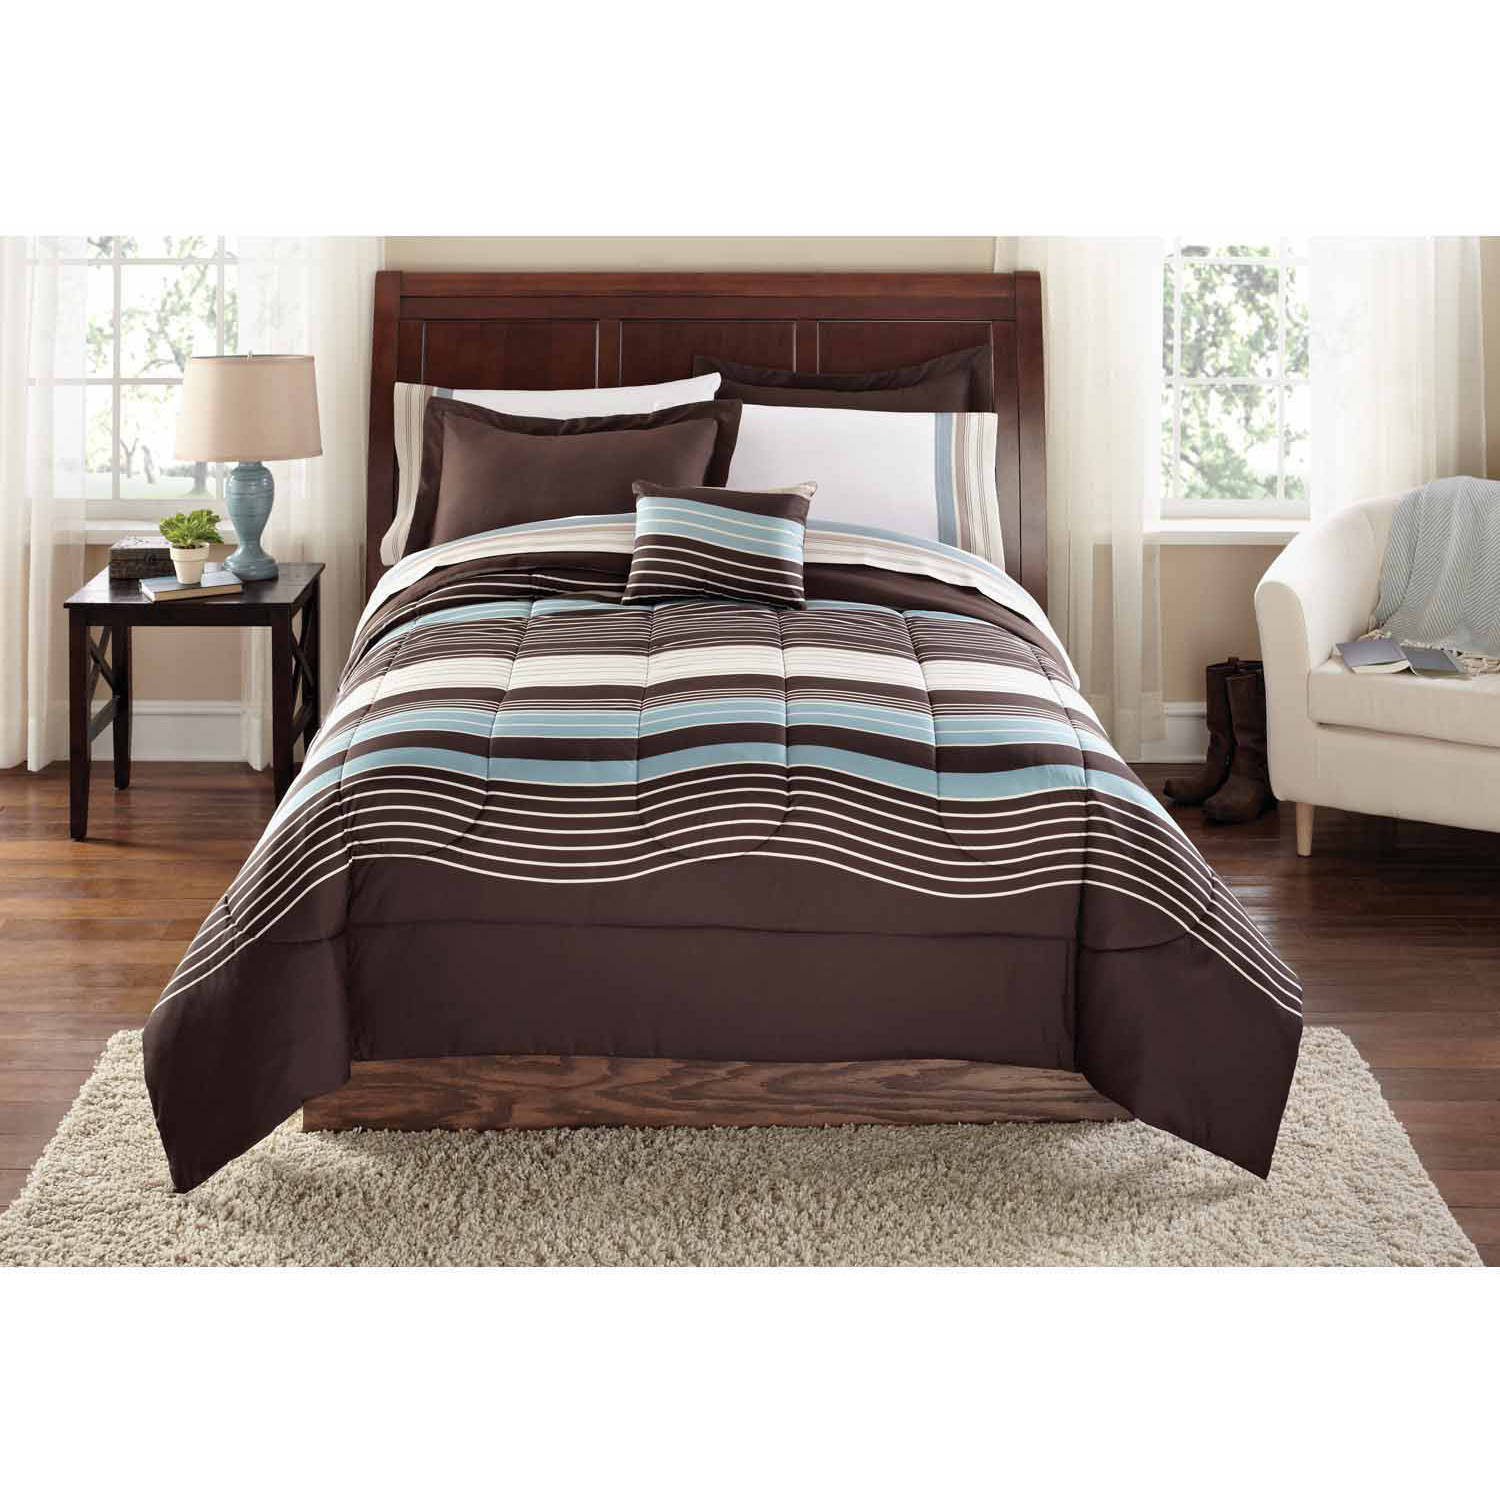 and bedspread for mint queen pink sets king bedroom twin ruffle red gray comforter college cal set bedding white size bedspreads xl tan cute black gold